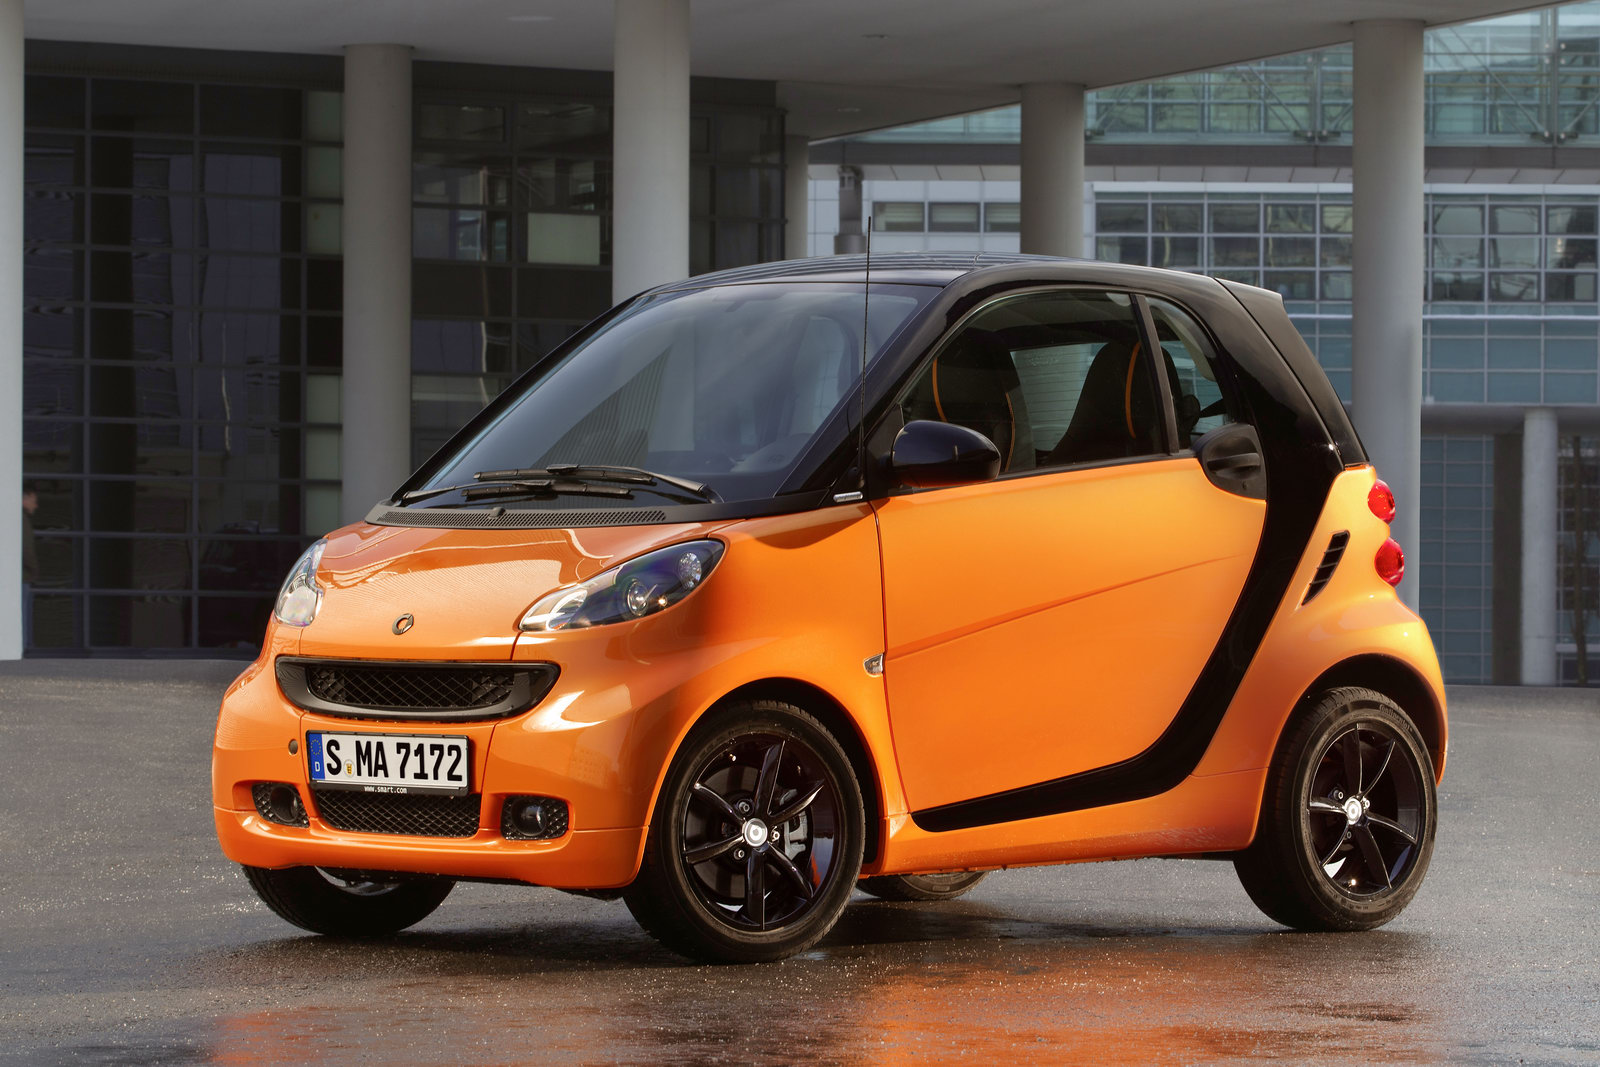 2011 Smart fortwo photo - 3